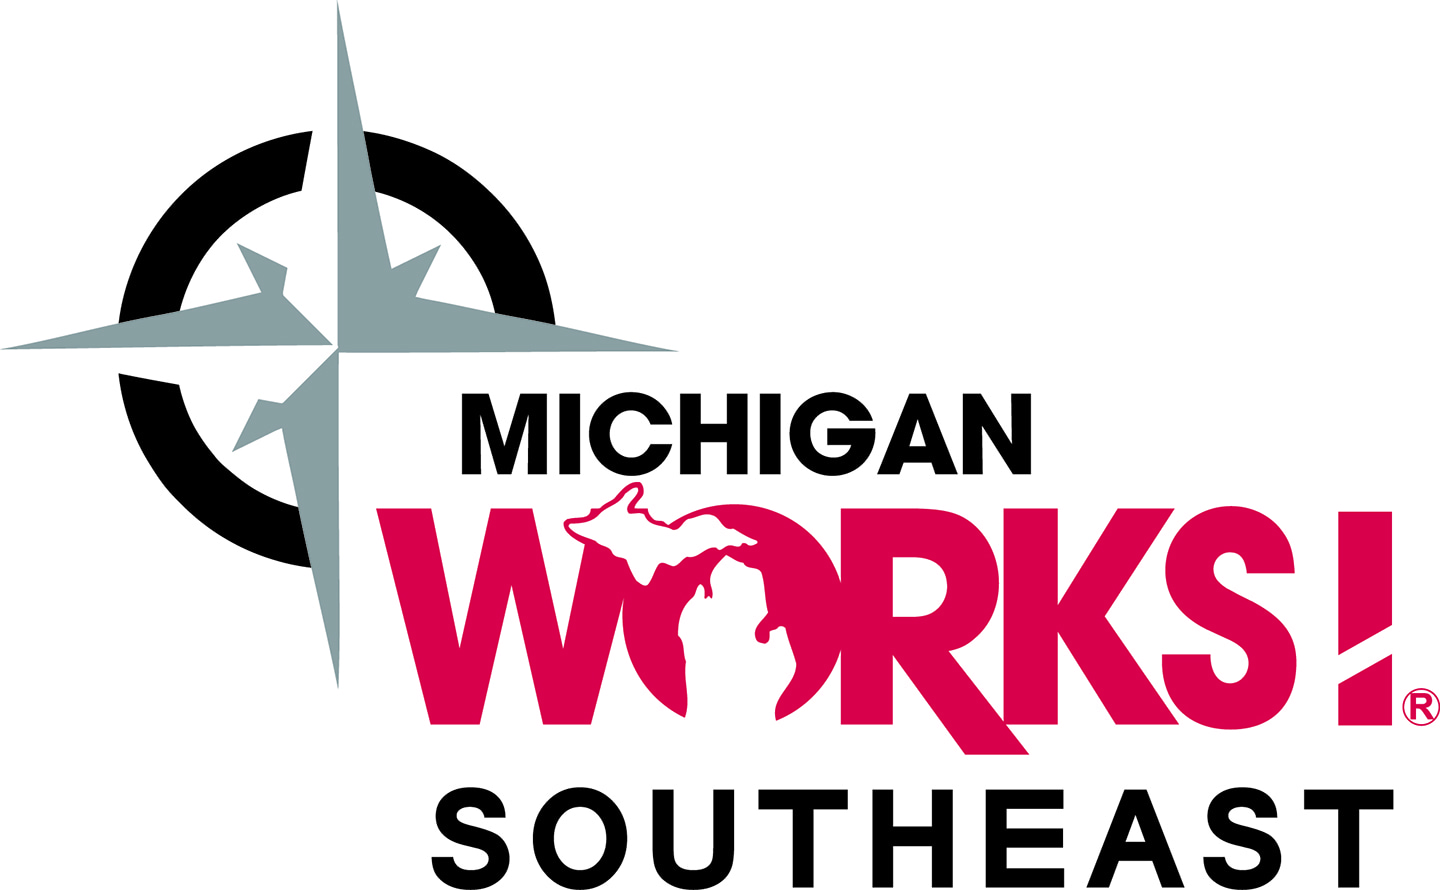 Michigan Works SouthEast